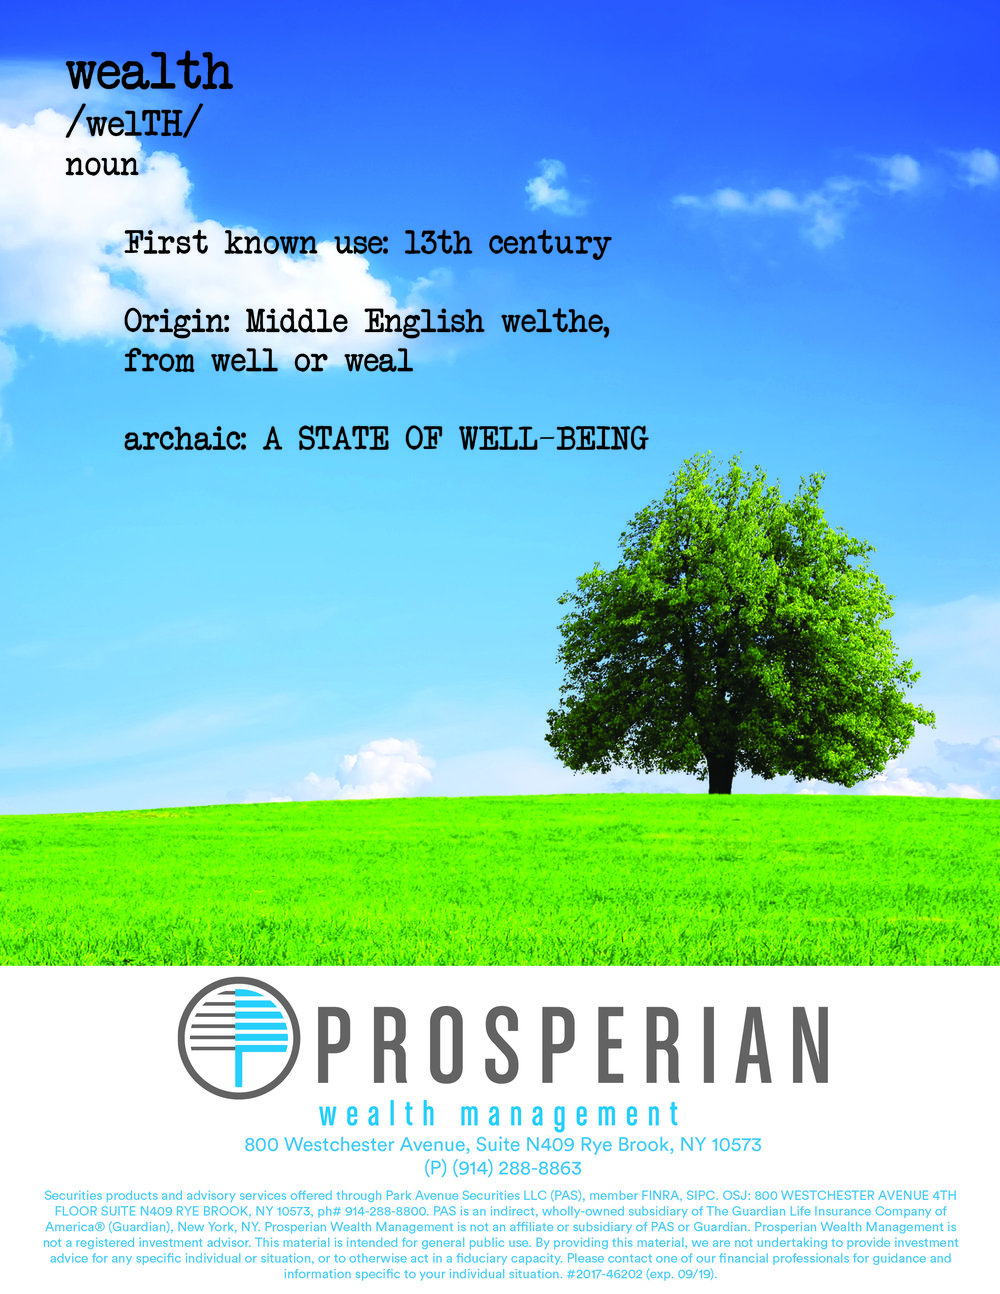 Prosperian Wealth Management Ad